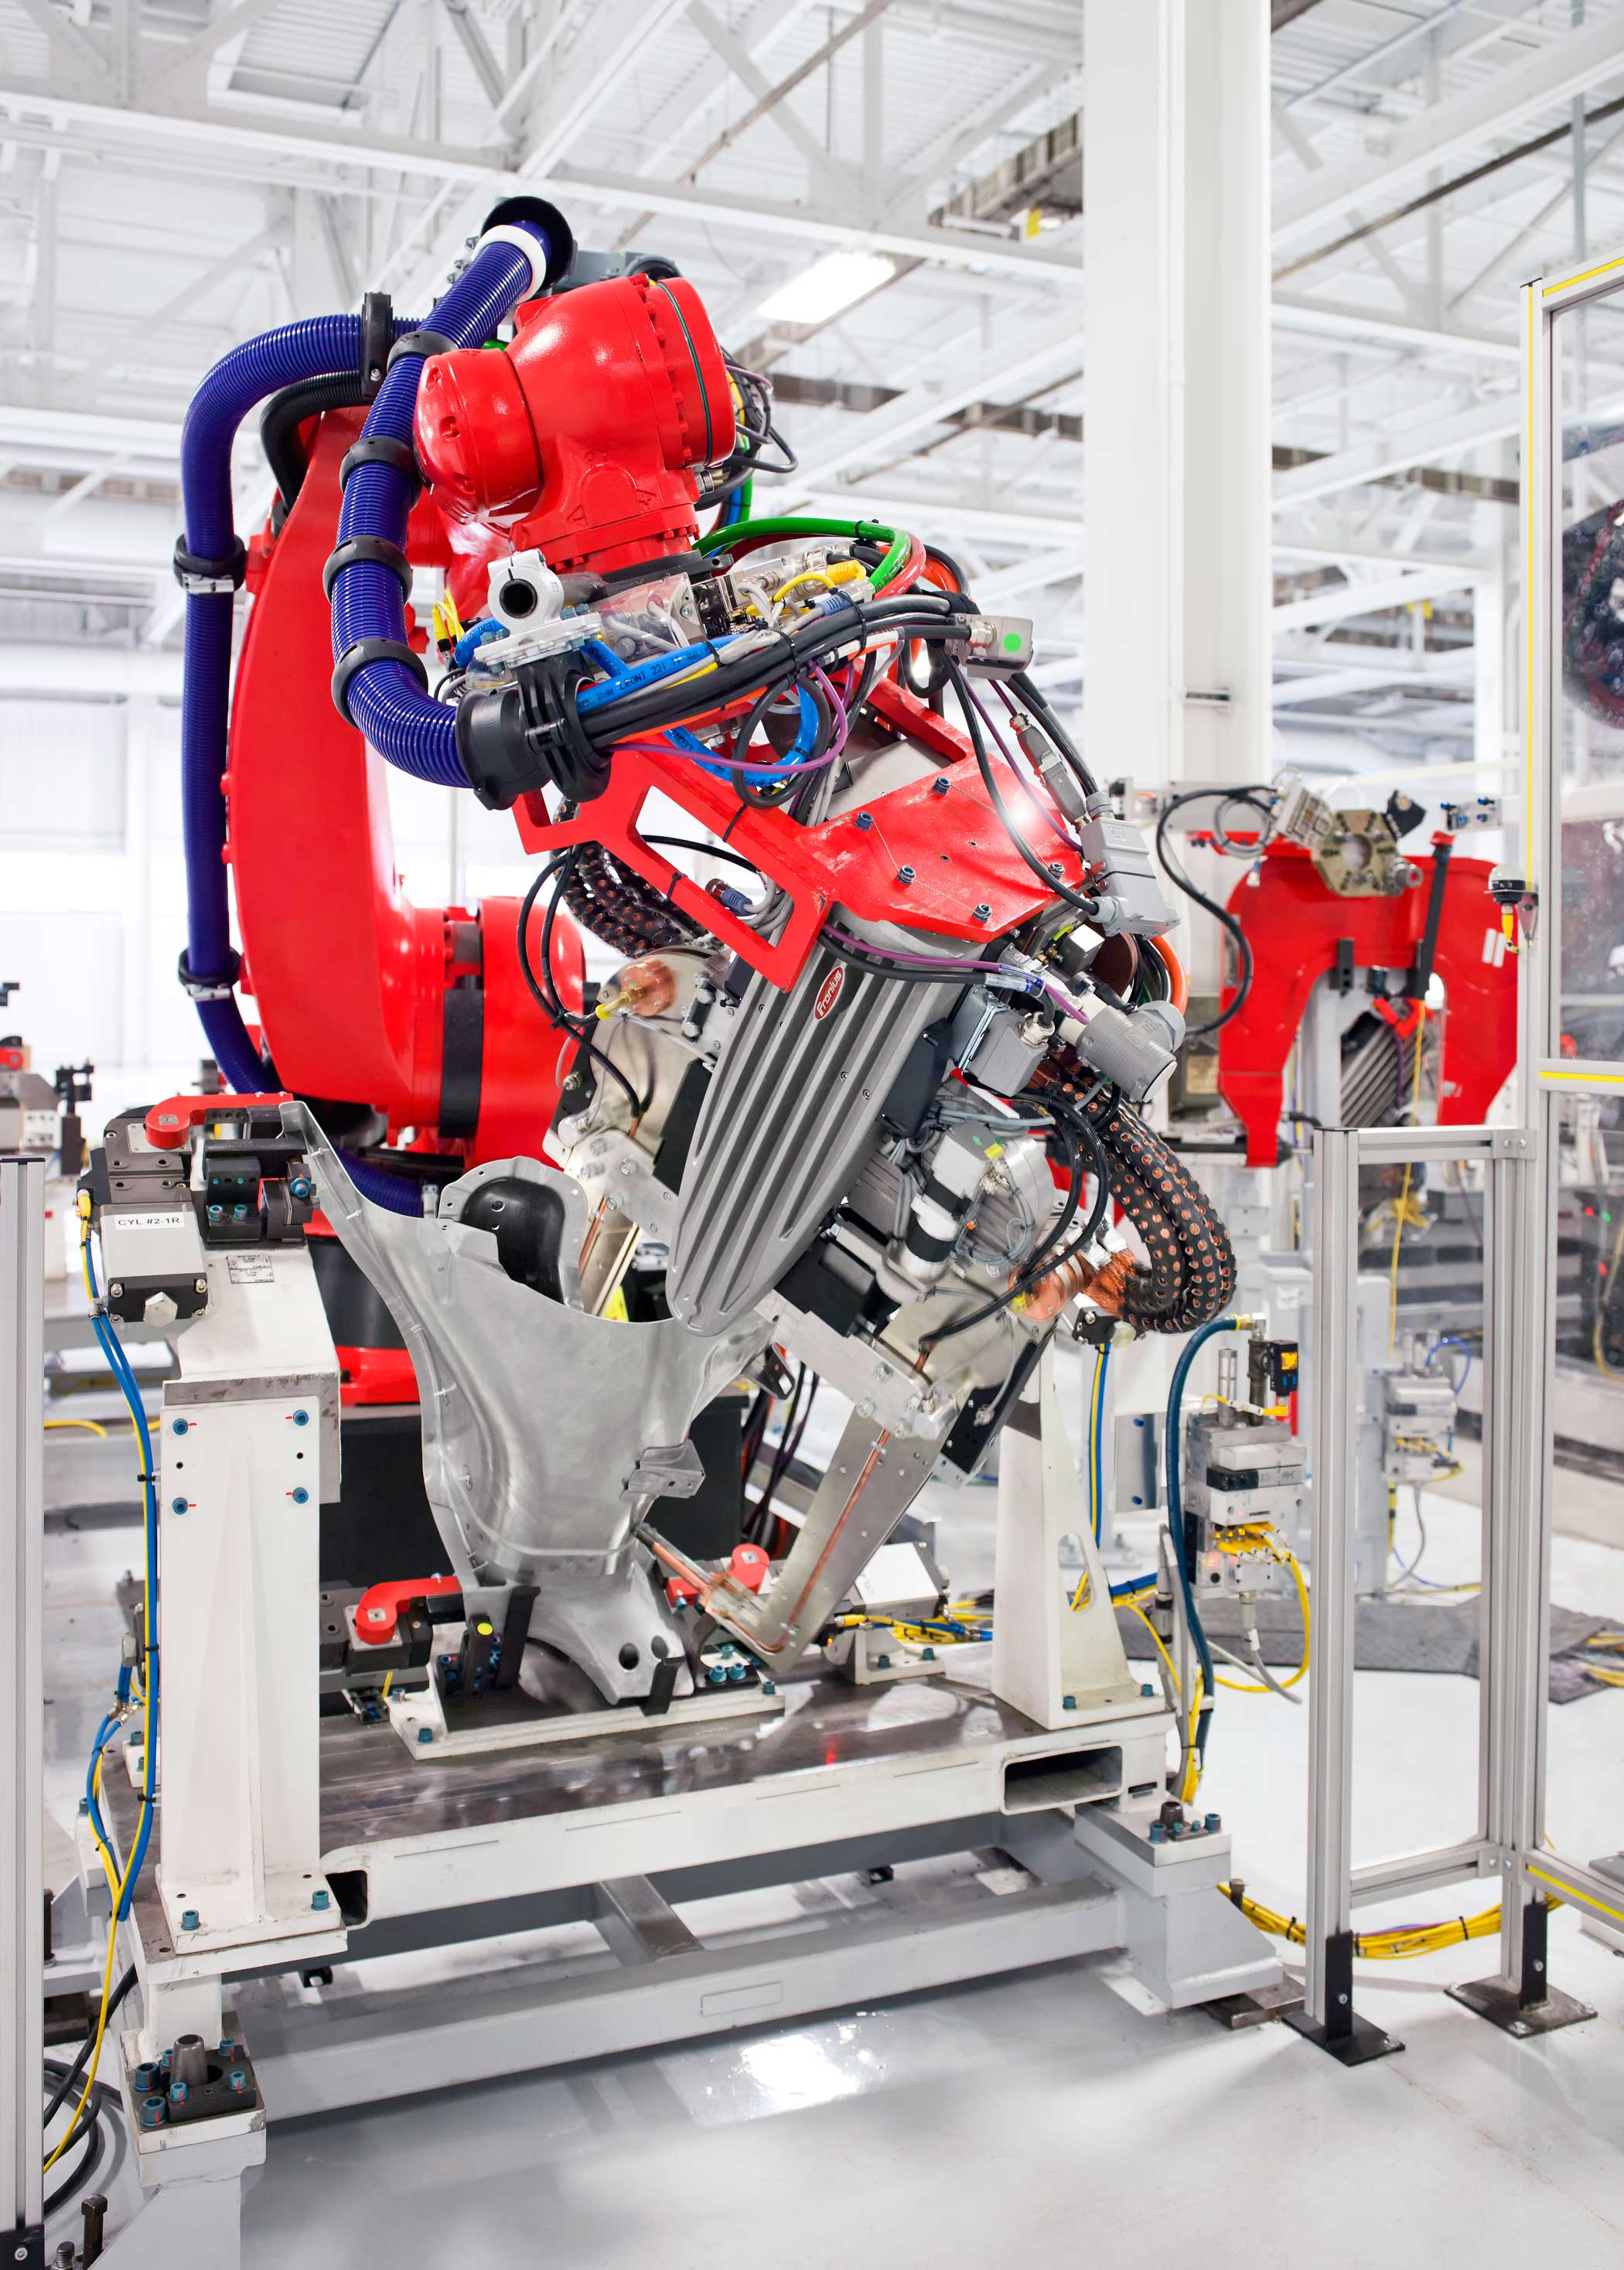 A machine used on the assembly line at the Tesla Factory in Fremont, Calif.